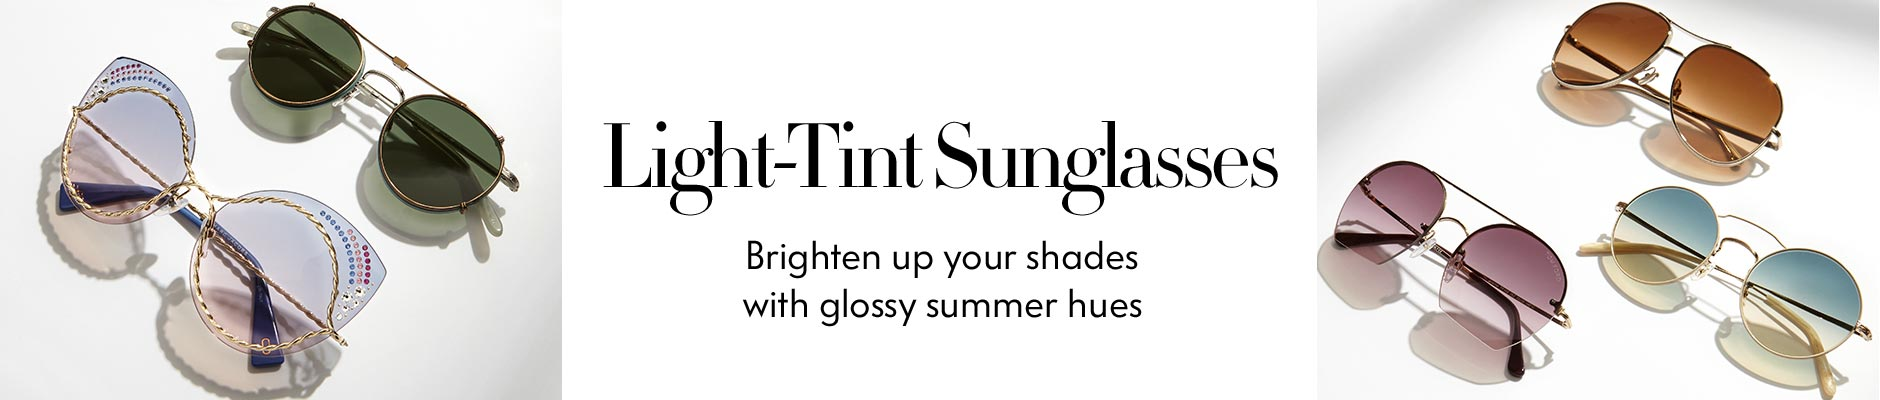 Light-tint sunglasses, brighten up your shades with glossy summer hues